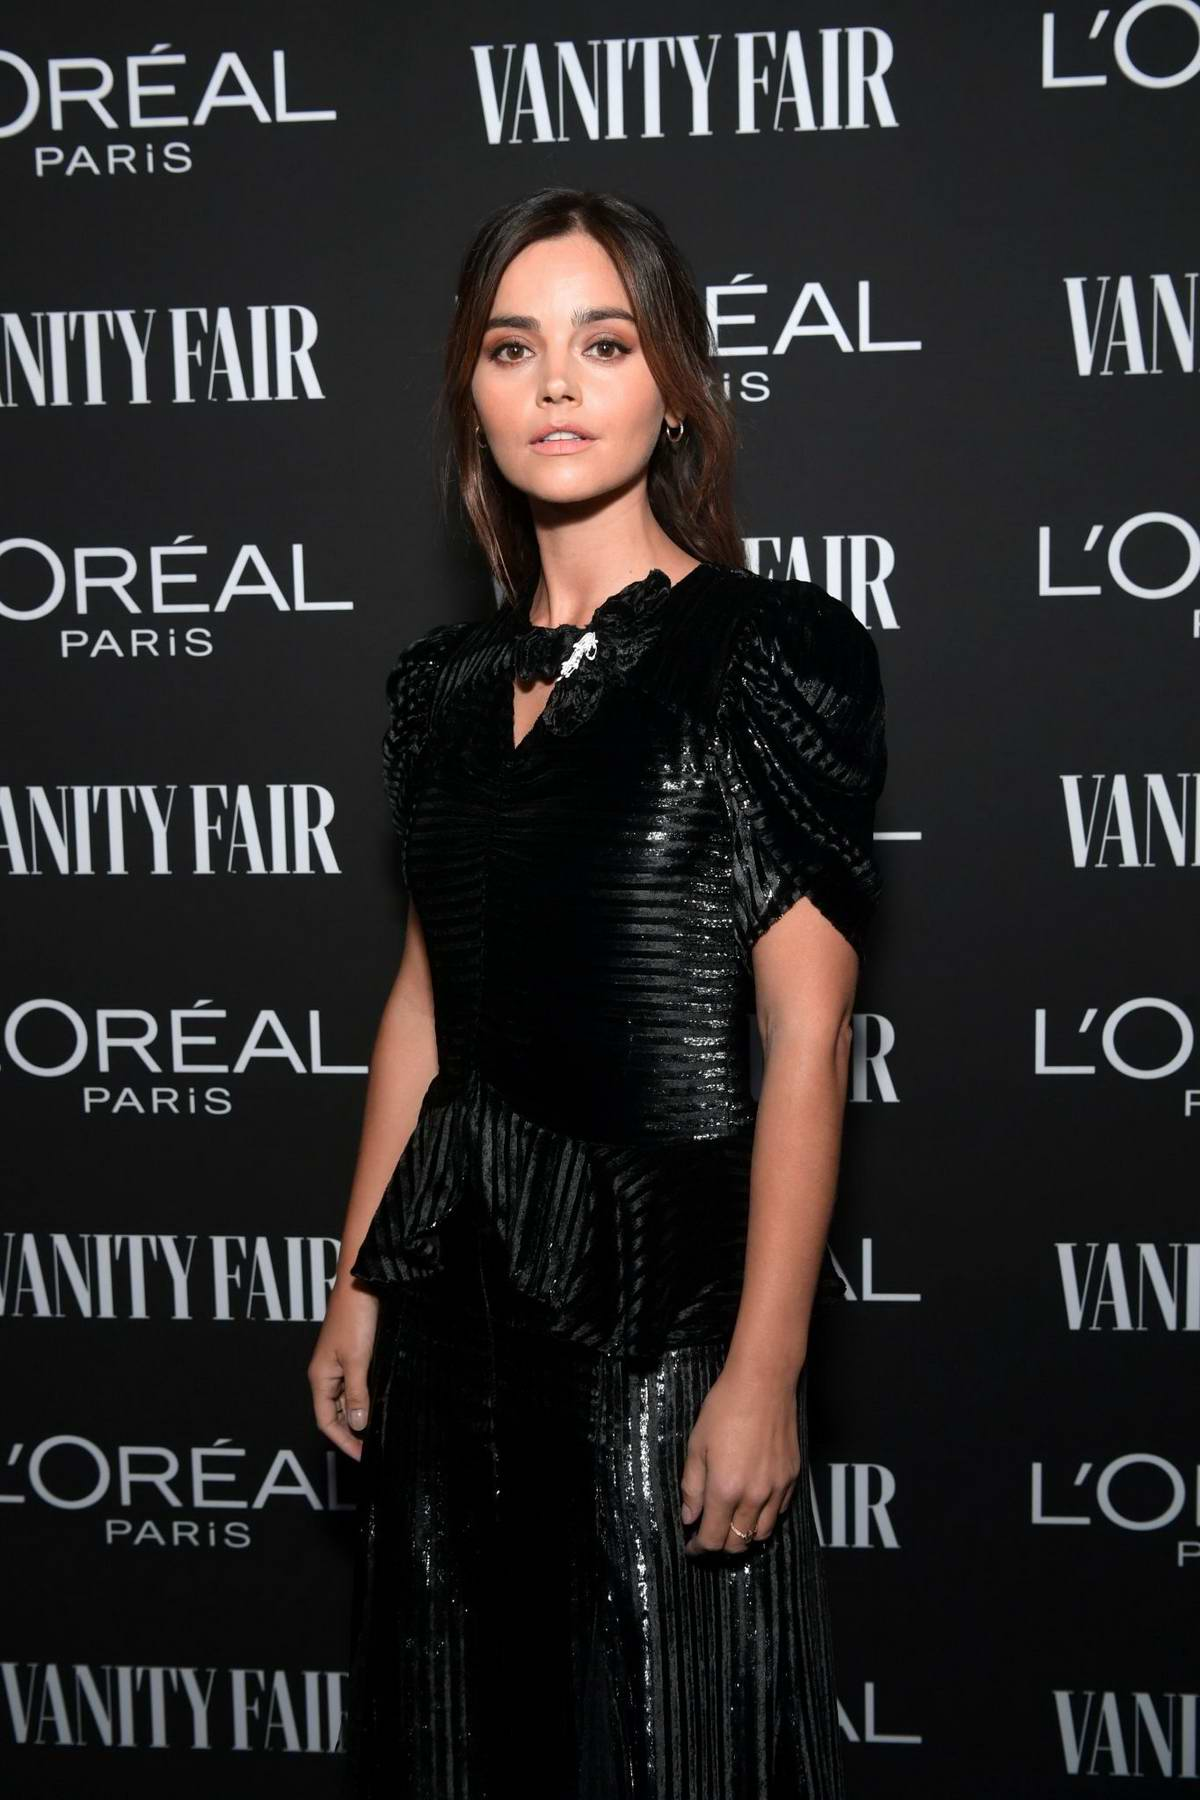 Jenna Coleman attends the Vanity Fair and L'Oréal Paris Celebrate New Hollywood in Los Angeles